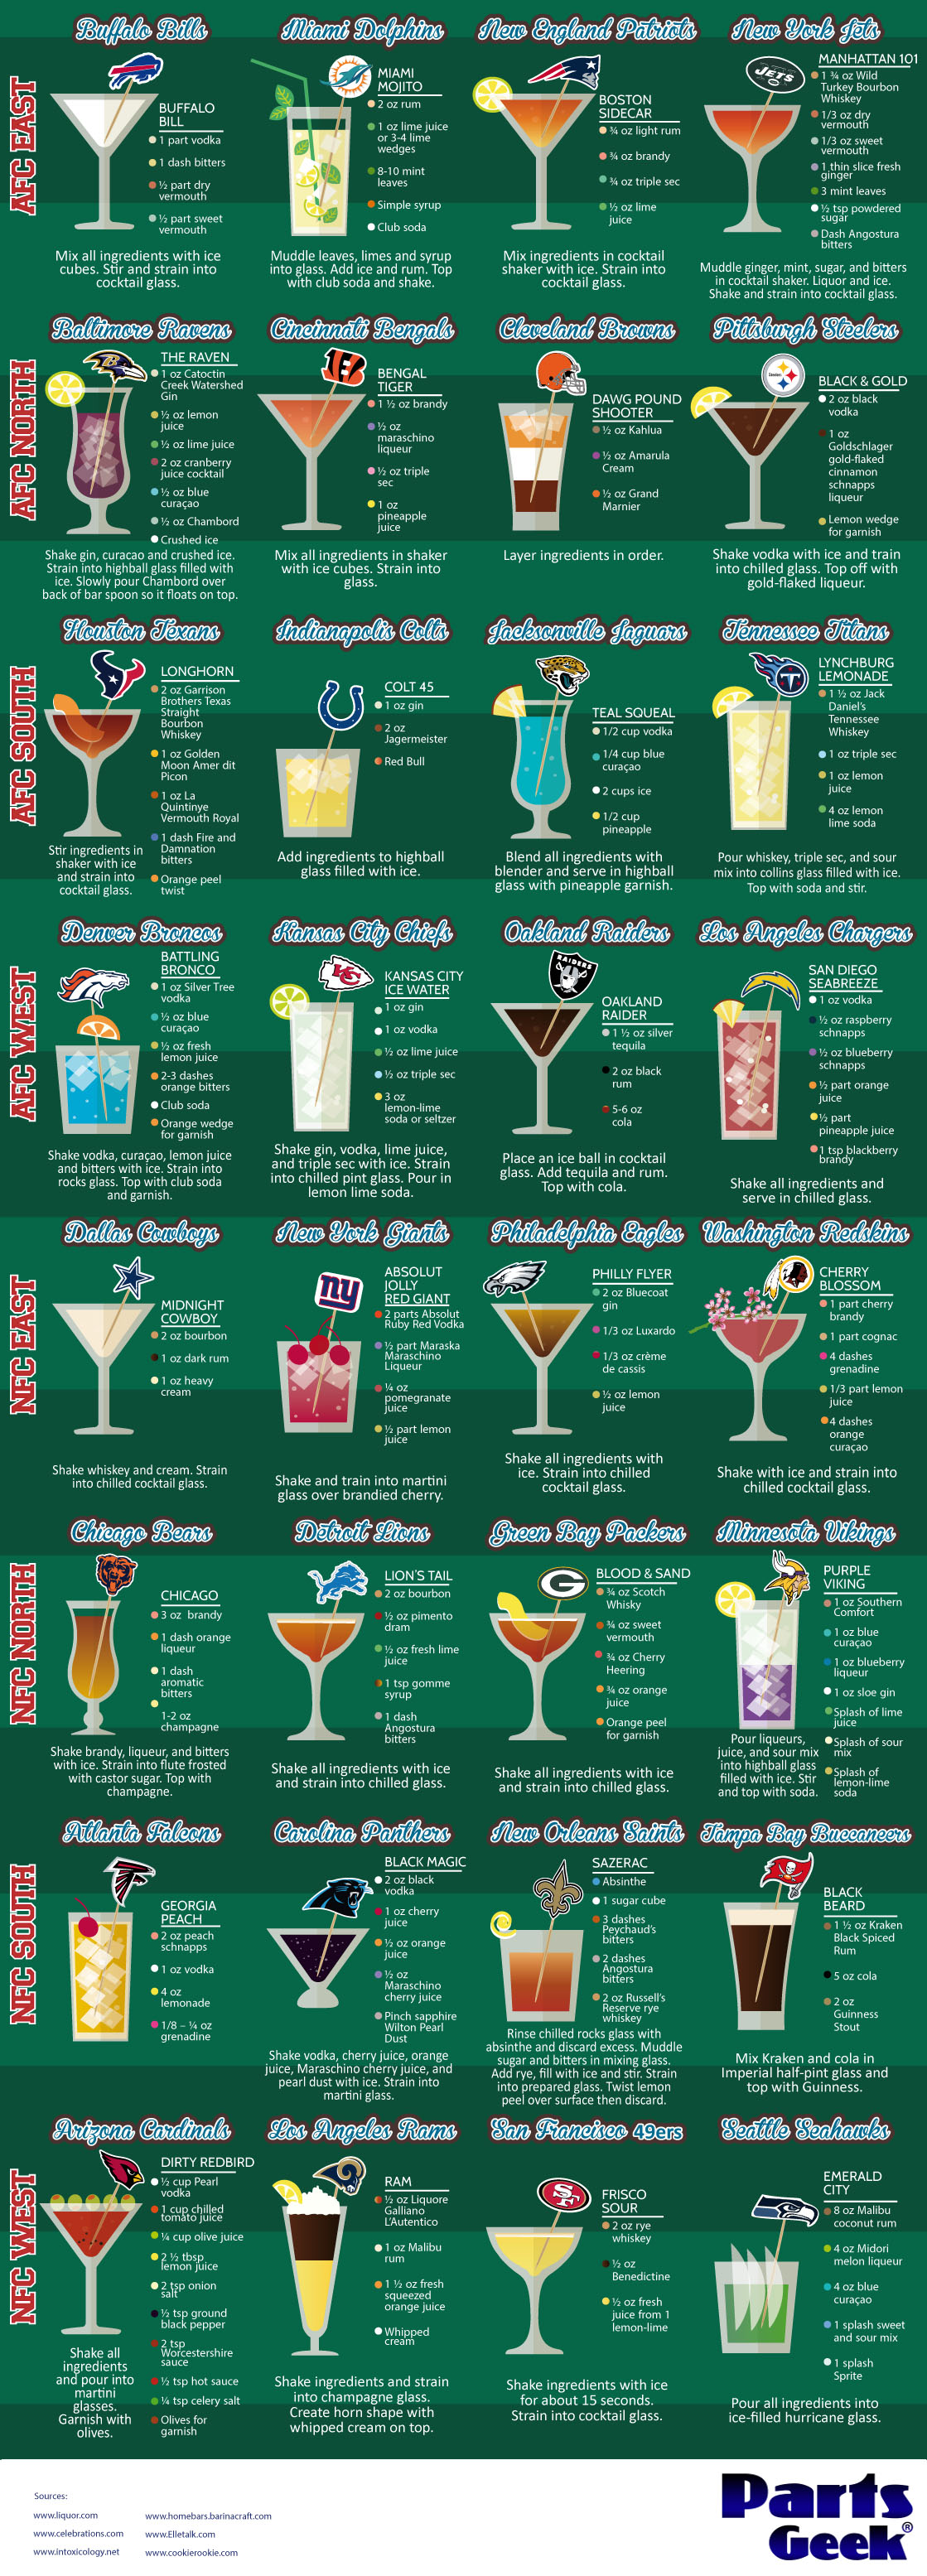 nfl cocktails